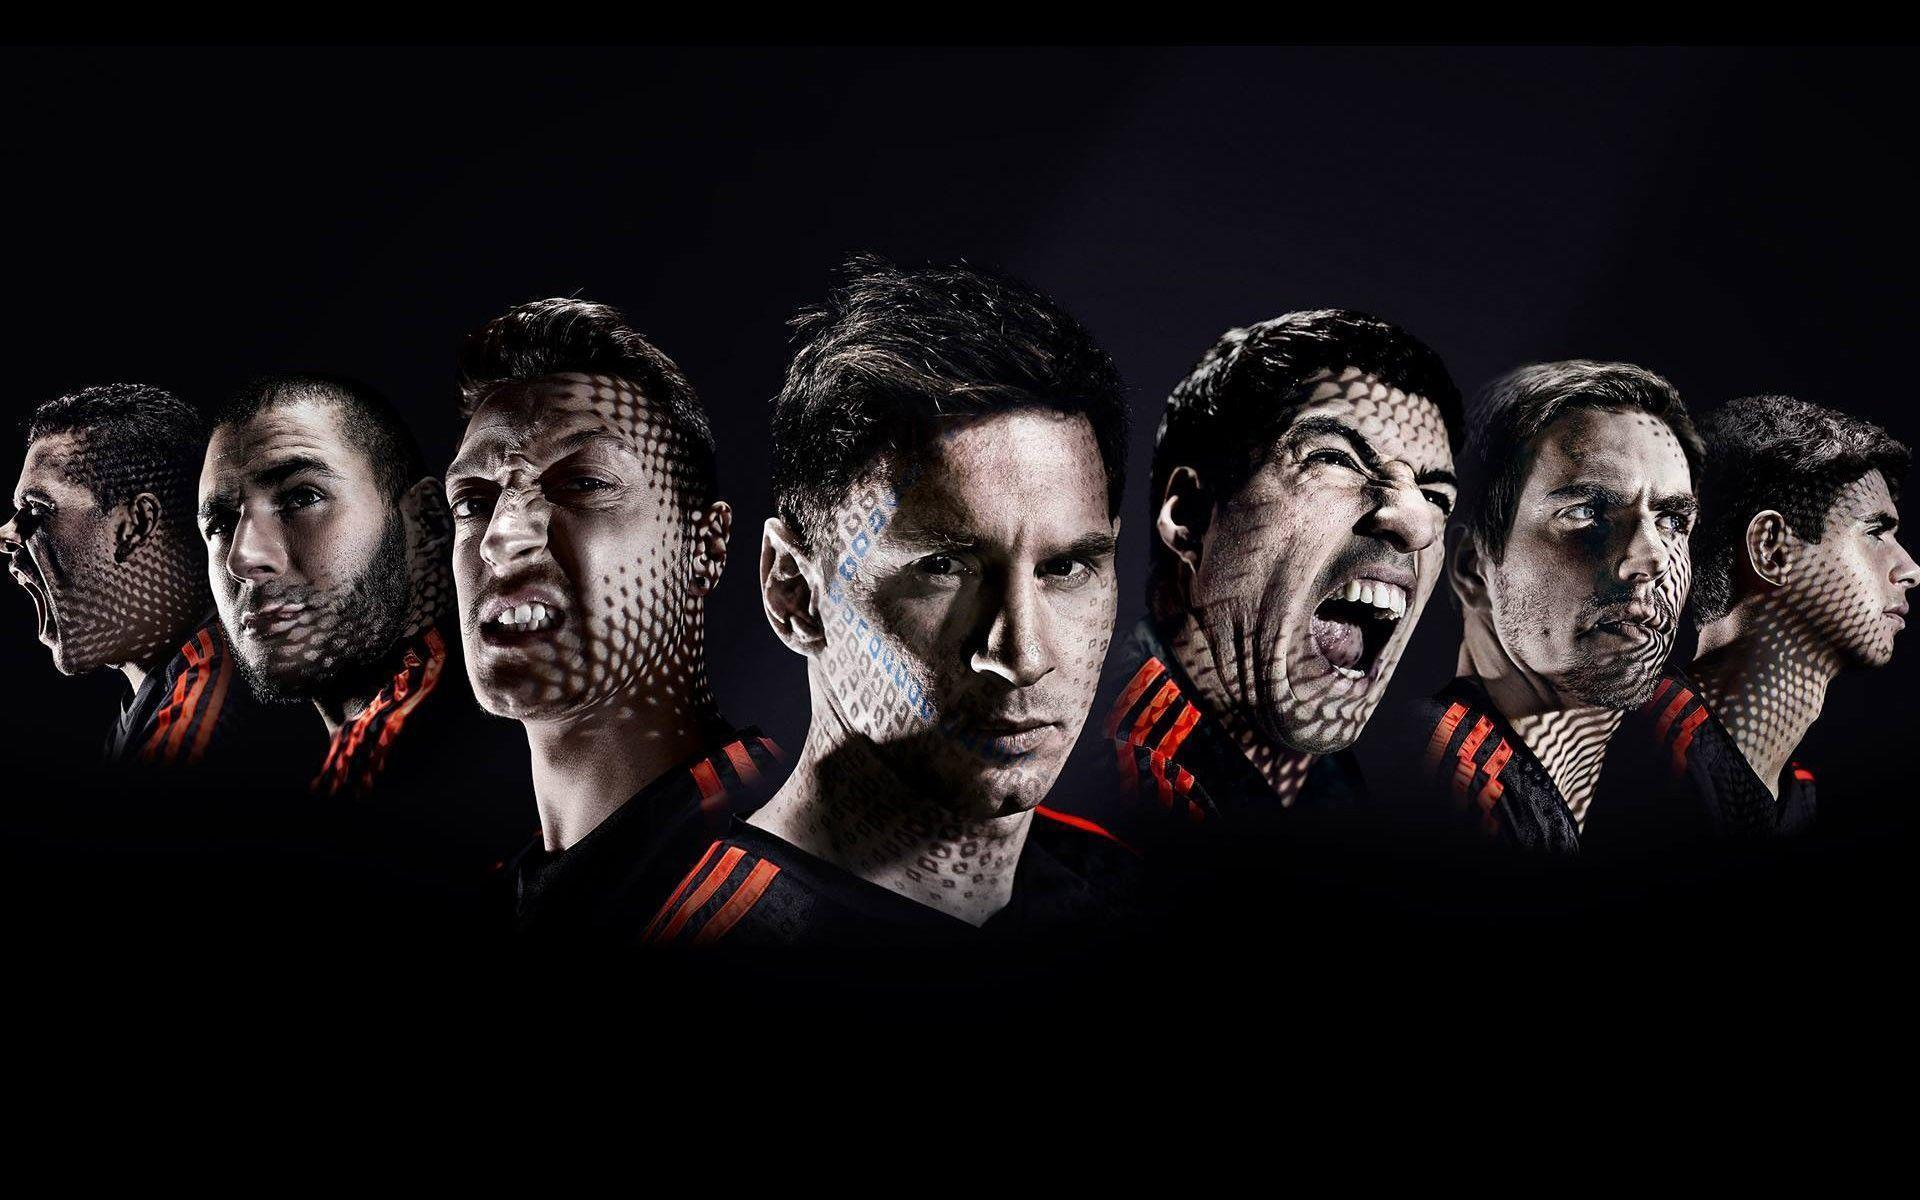 Adidas Wallpapers 2015 - Wallpaper Cave